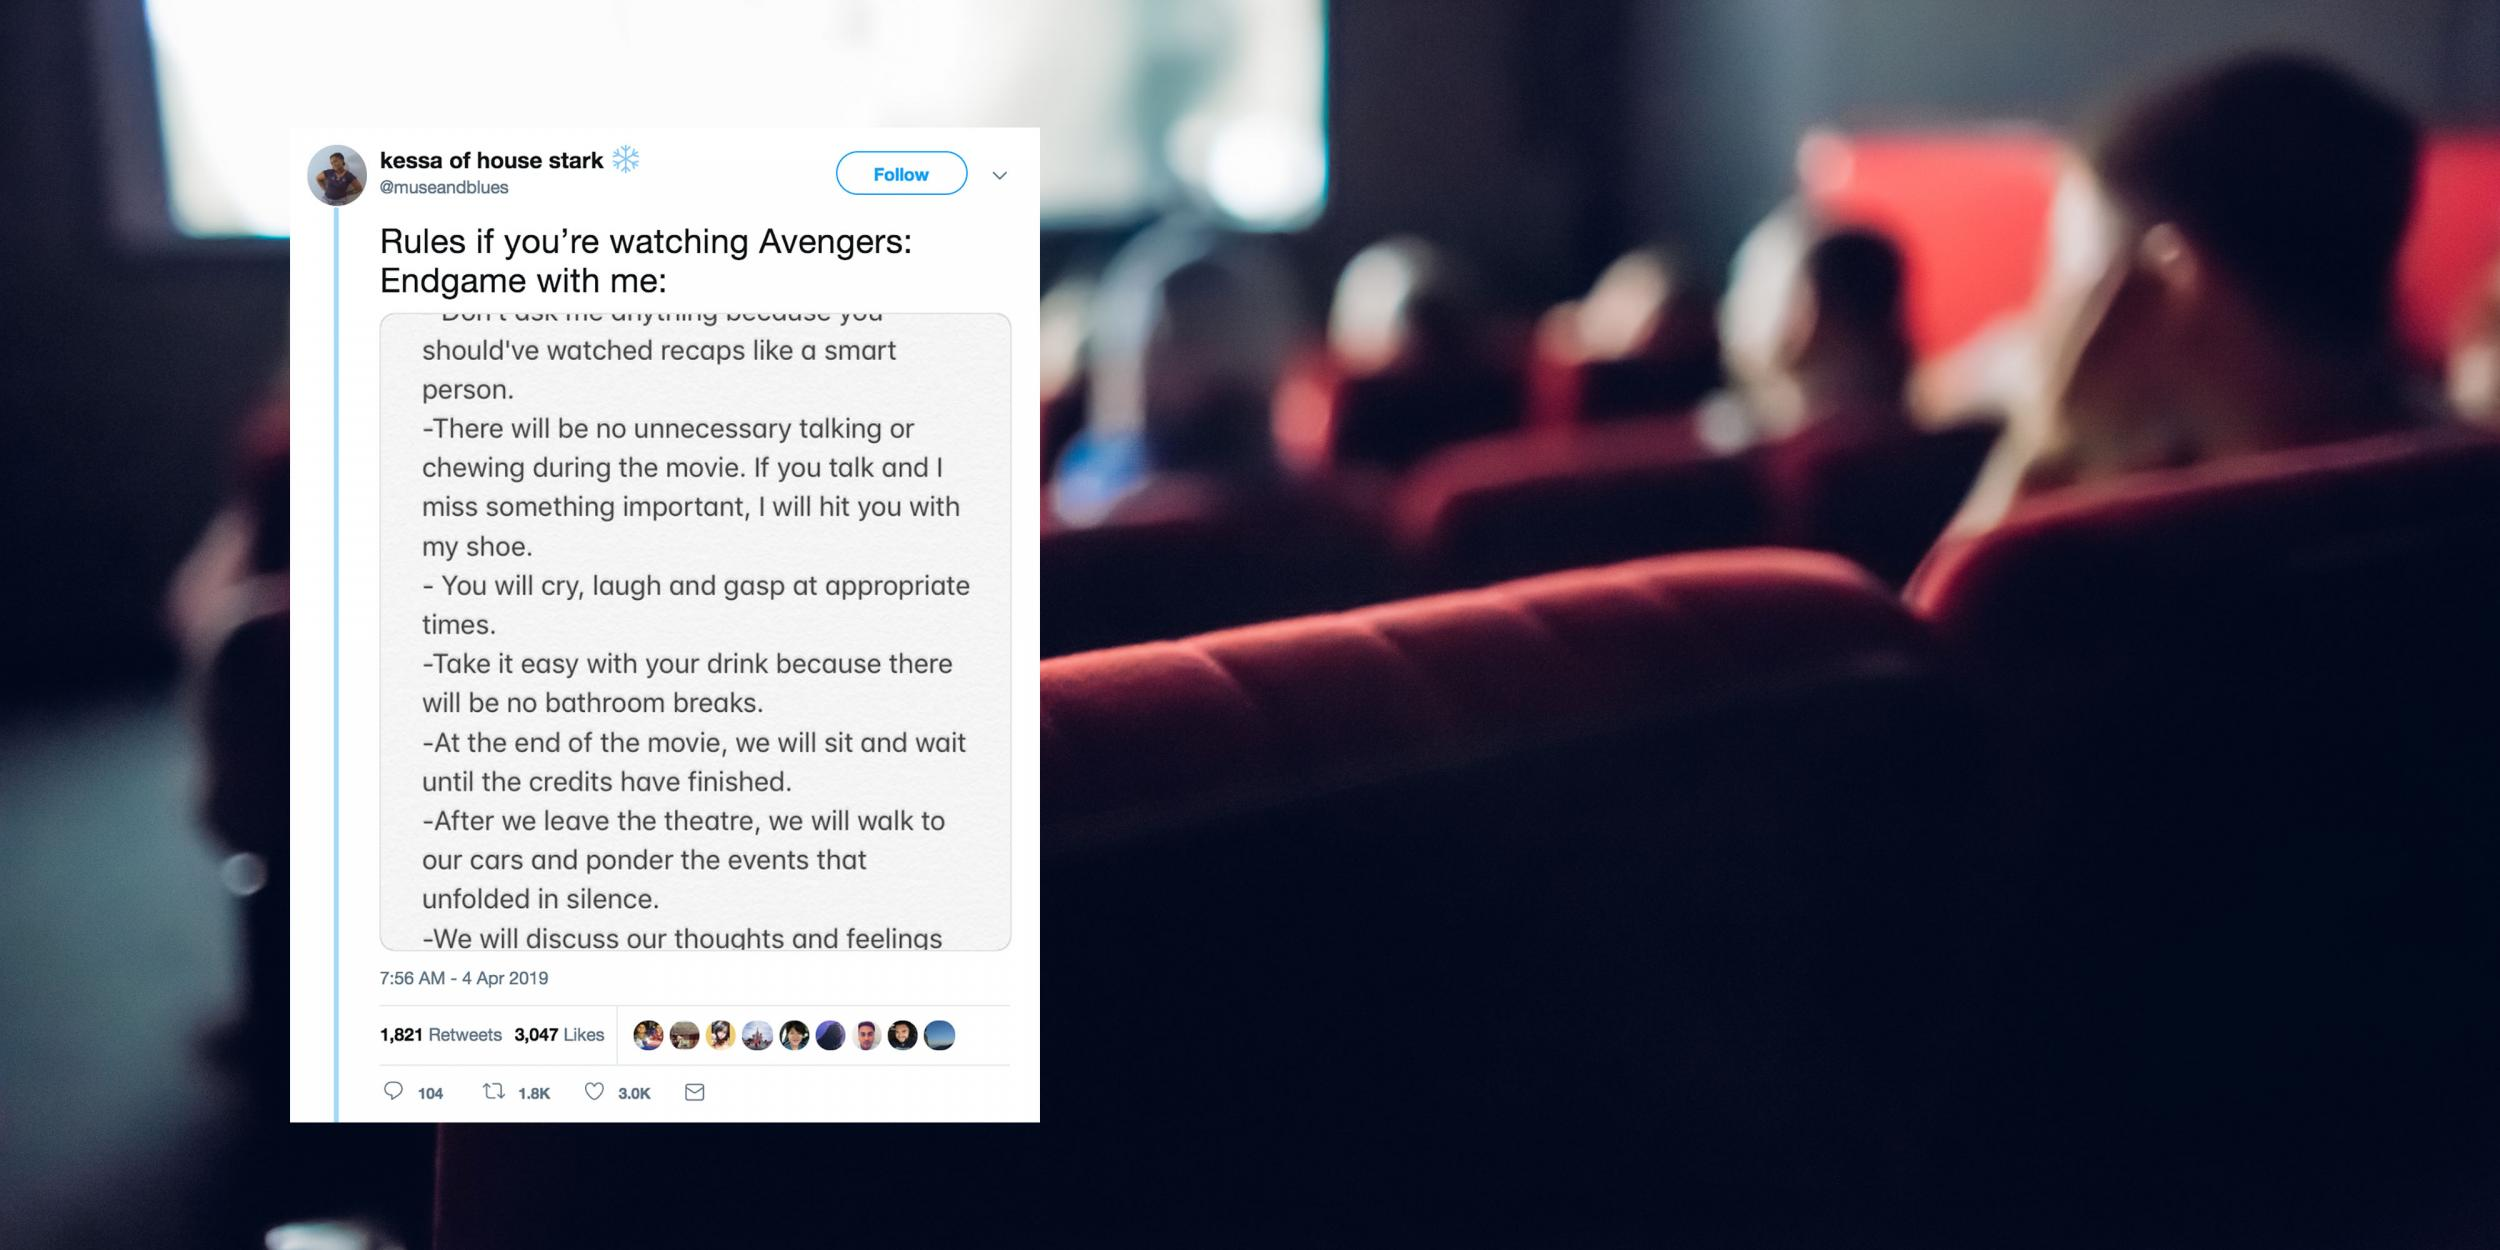 This 'how to watch Avengers: Endgame' rule book is too intense for